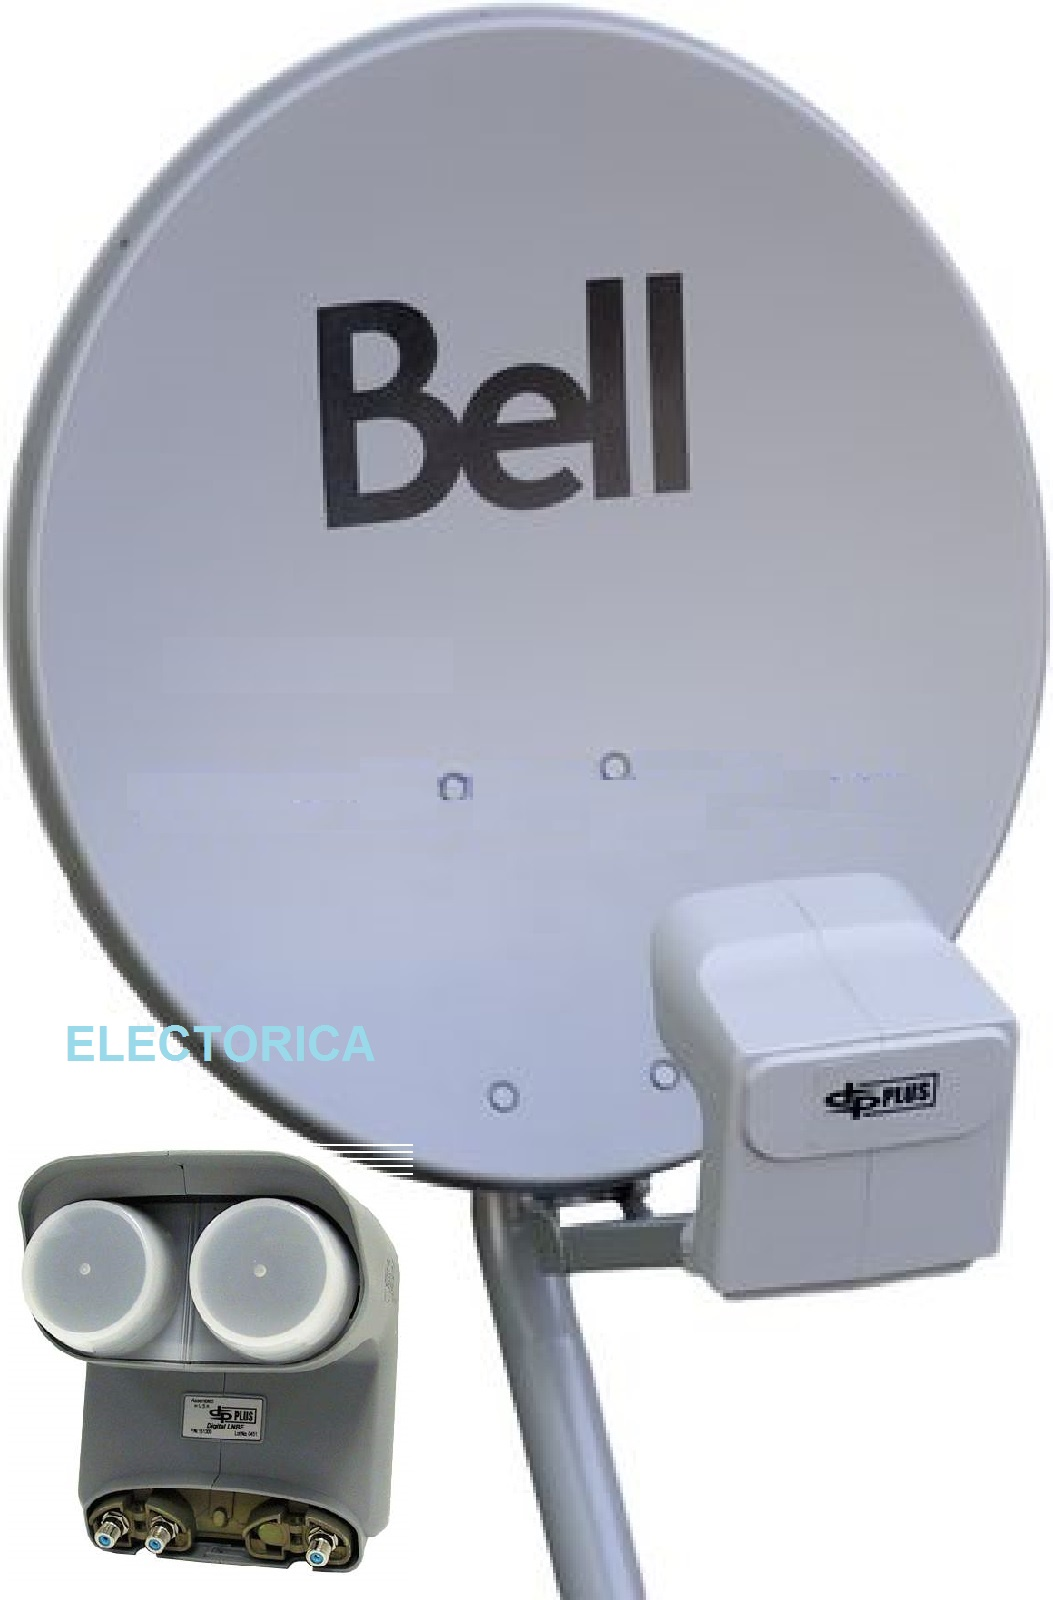 20 original bell dish 500 w twin dpp lnb for bell dish. Black Bedroom Furniture Sets. Home Design Ideas